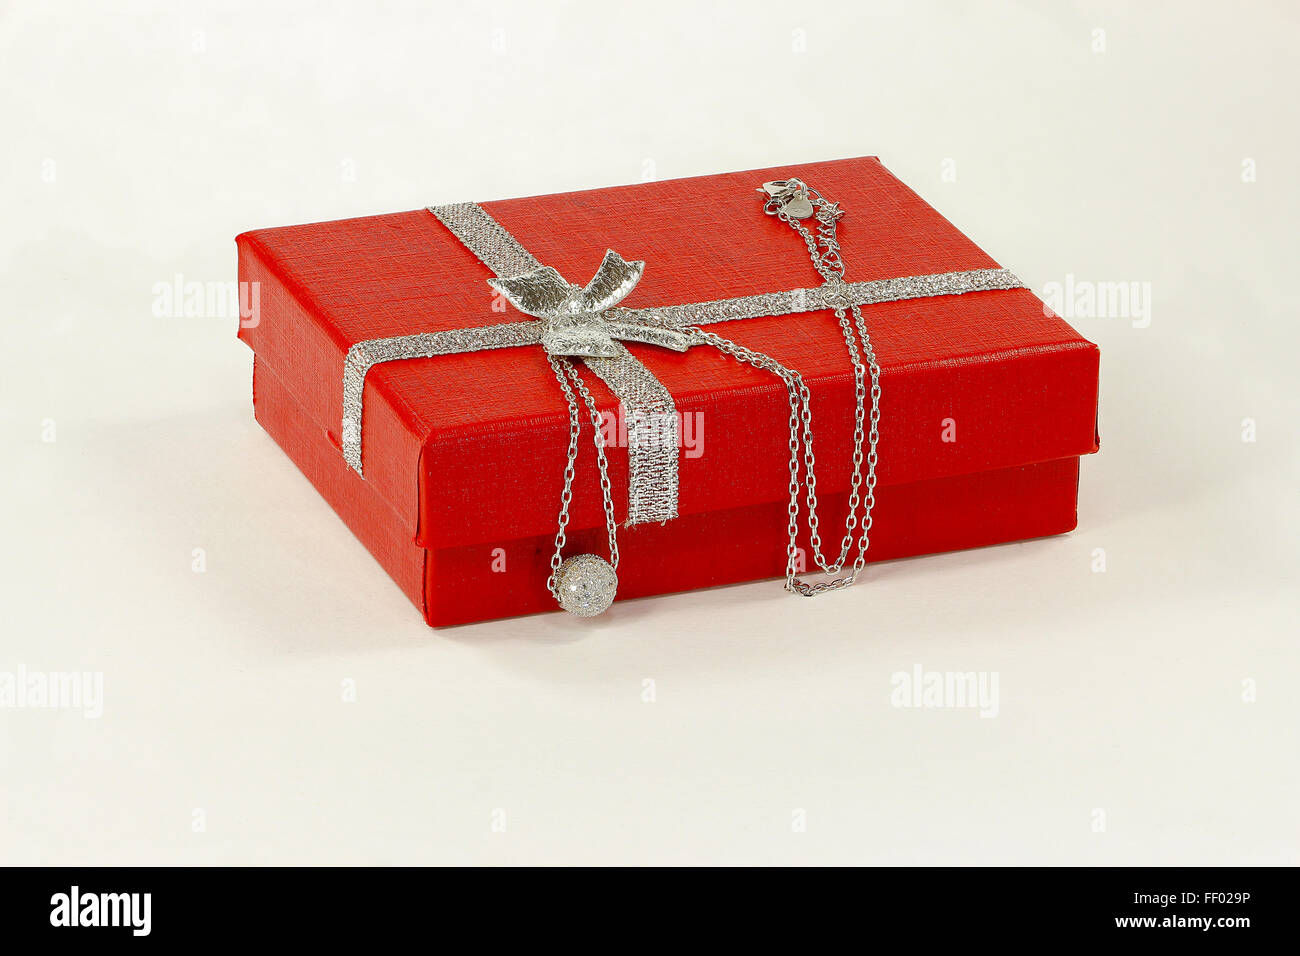 Silver necklace and jewelry box - Stock Image